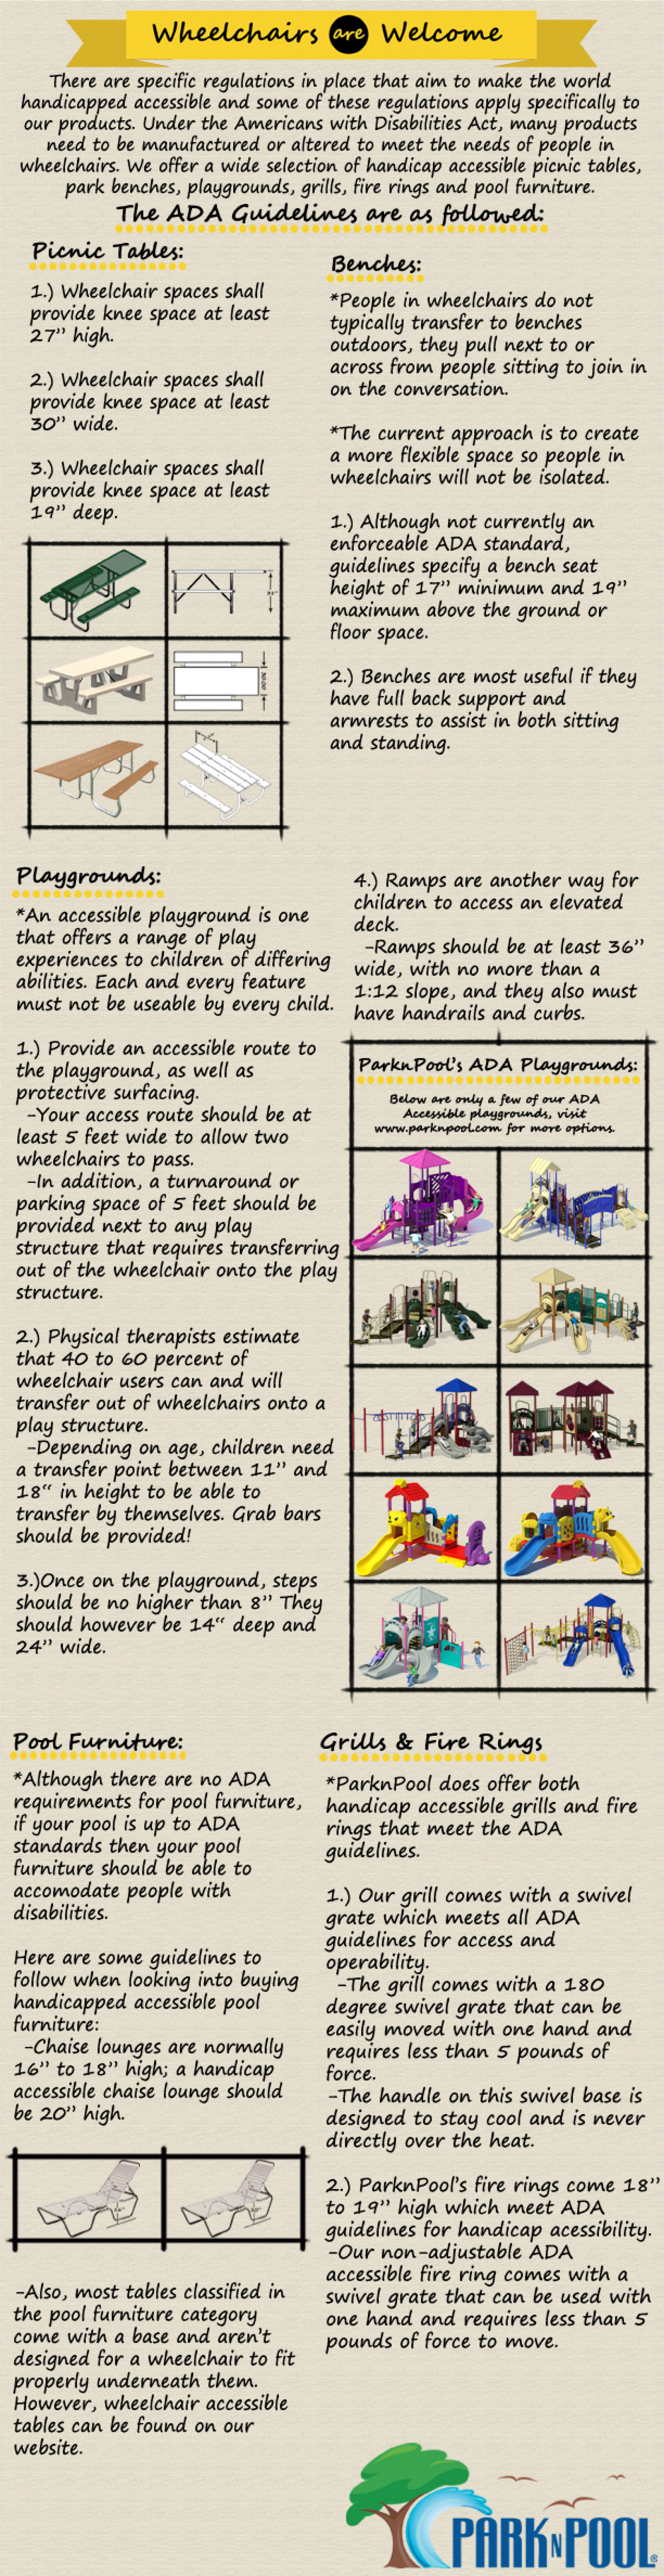 Wheelchairs are Welcome Infographic